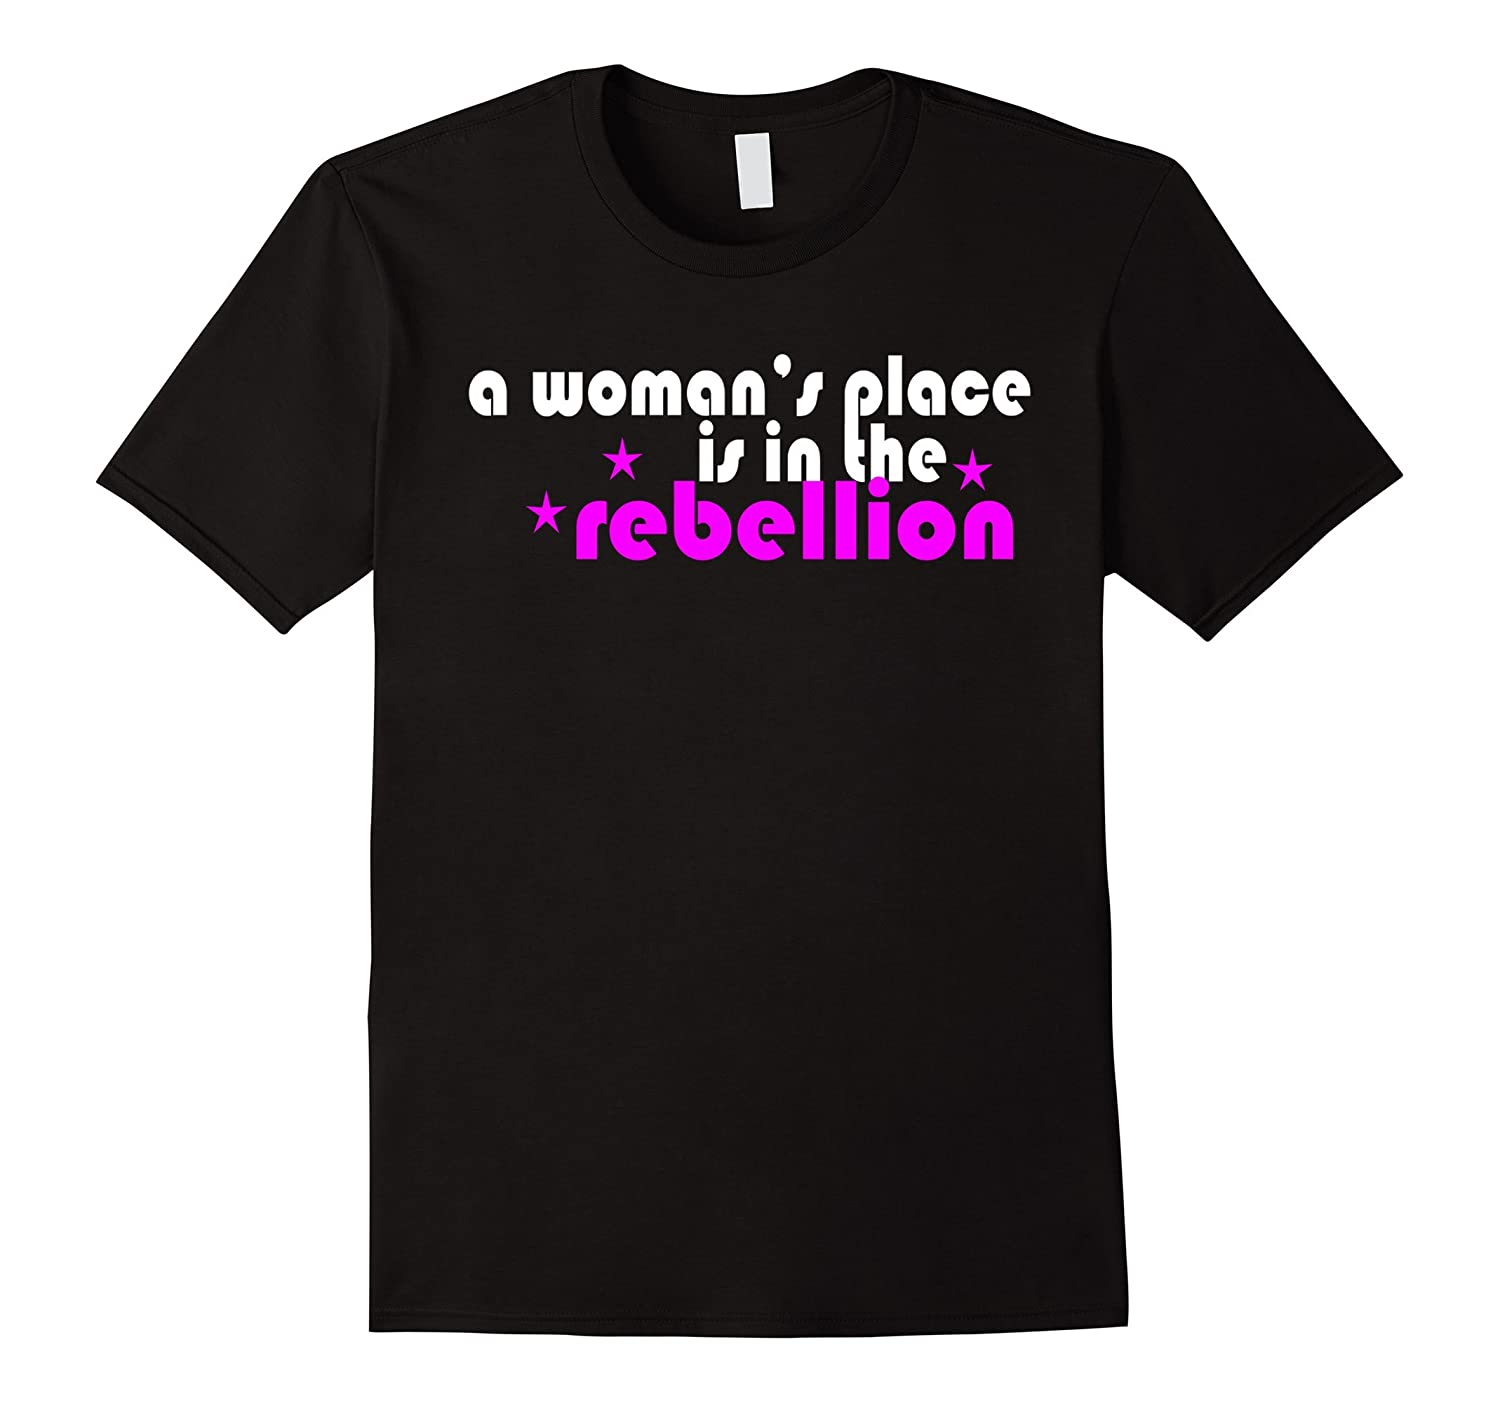 A Womens Place is in the Rebellion Shirt Women Unite Tshirt-CD